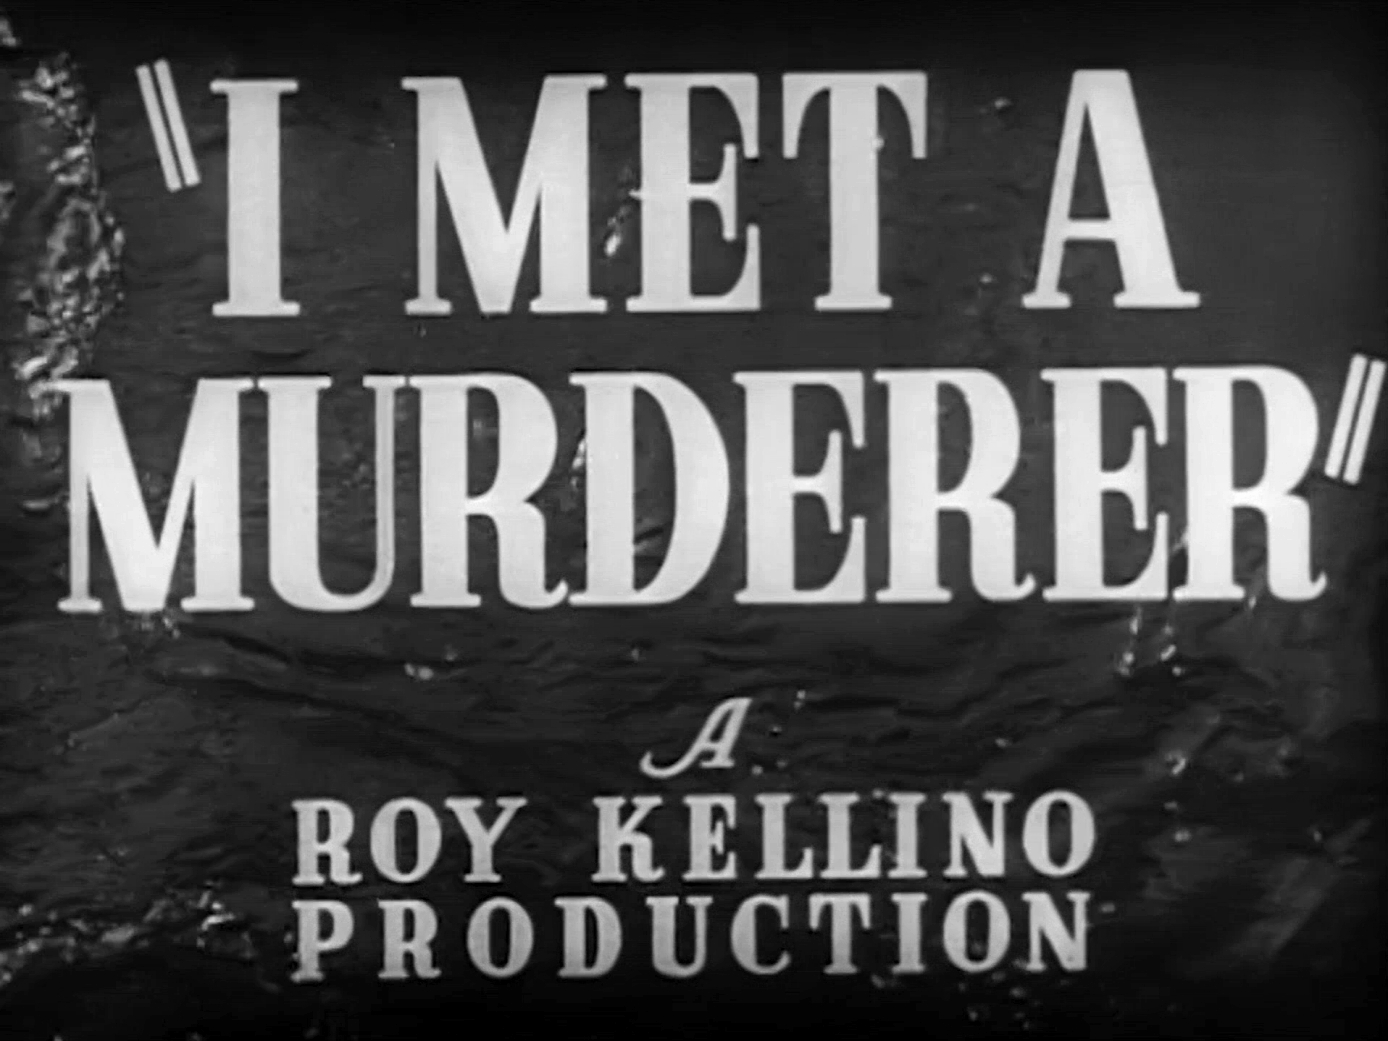 Main title from I Met a Murderer (1939) (6). A Roy Kellino production